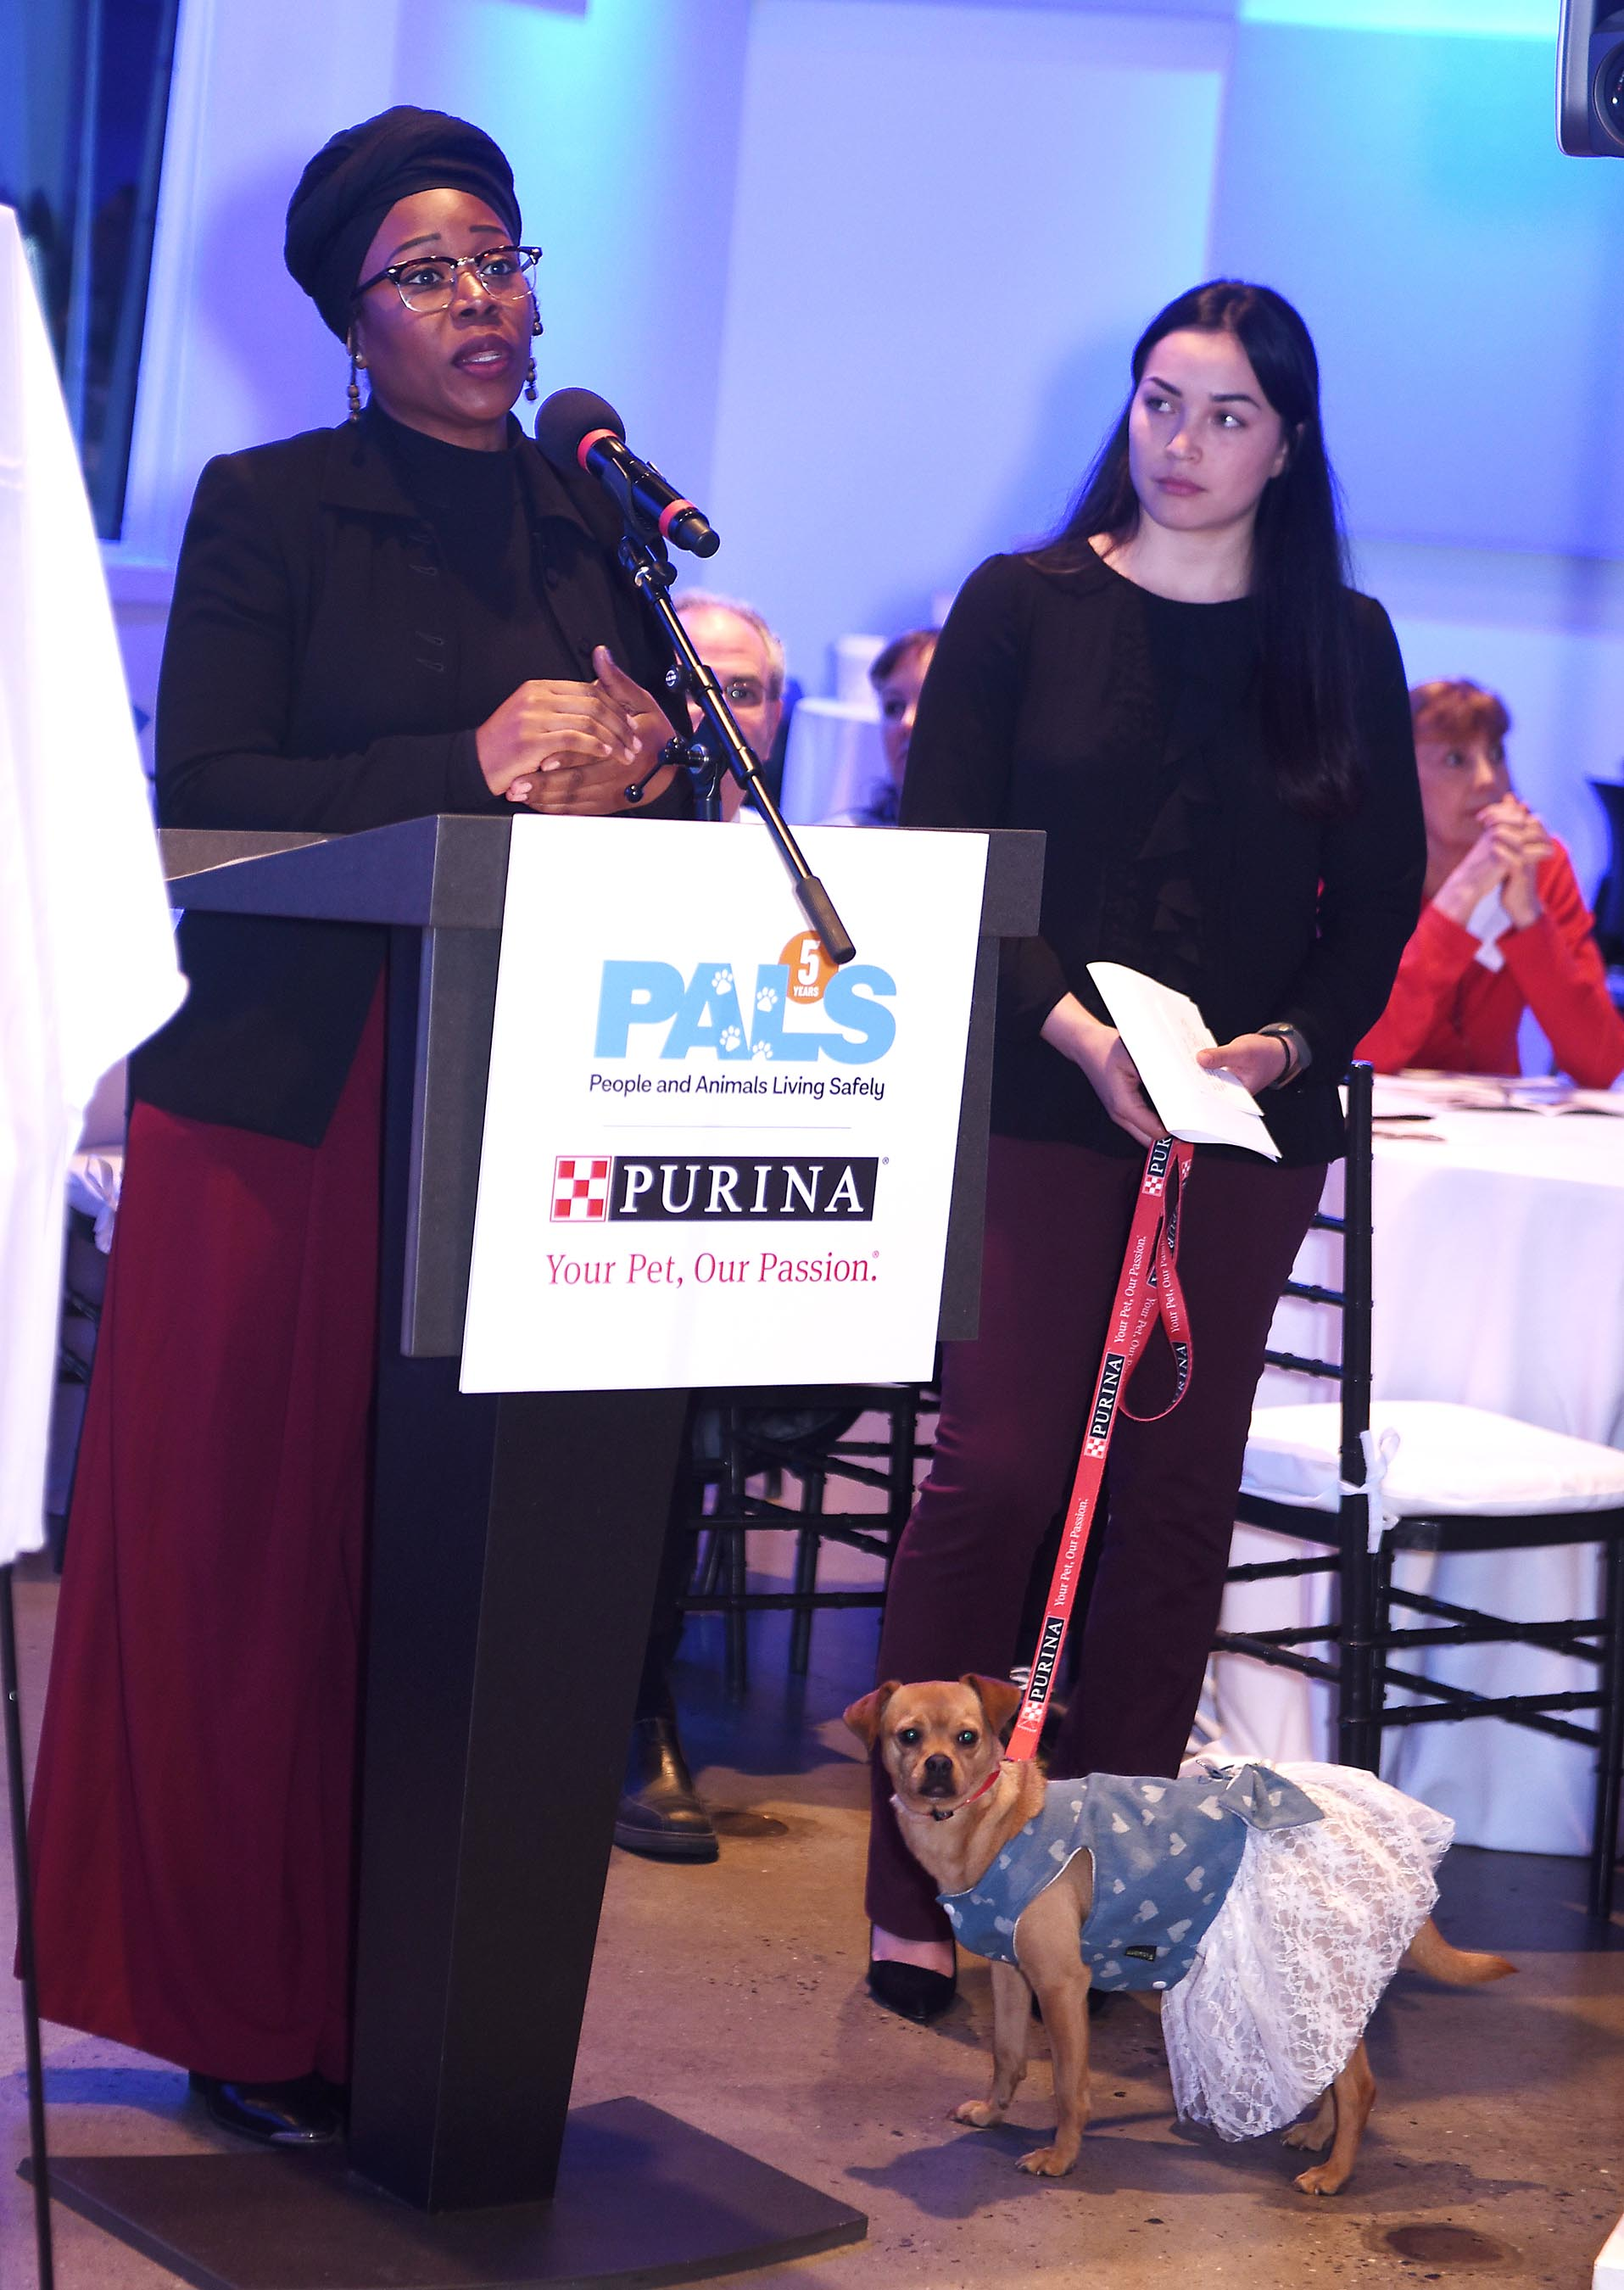 Domestic violence survivor, Hope Dawson and her dog Coco, have benefited from URI's PALS program. URI has welcomed over 100 pets into its residences across NYC.